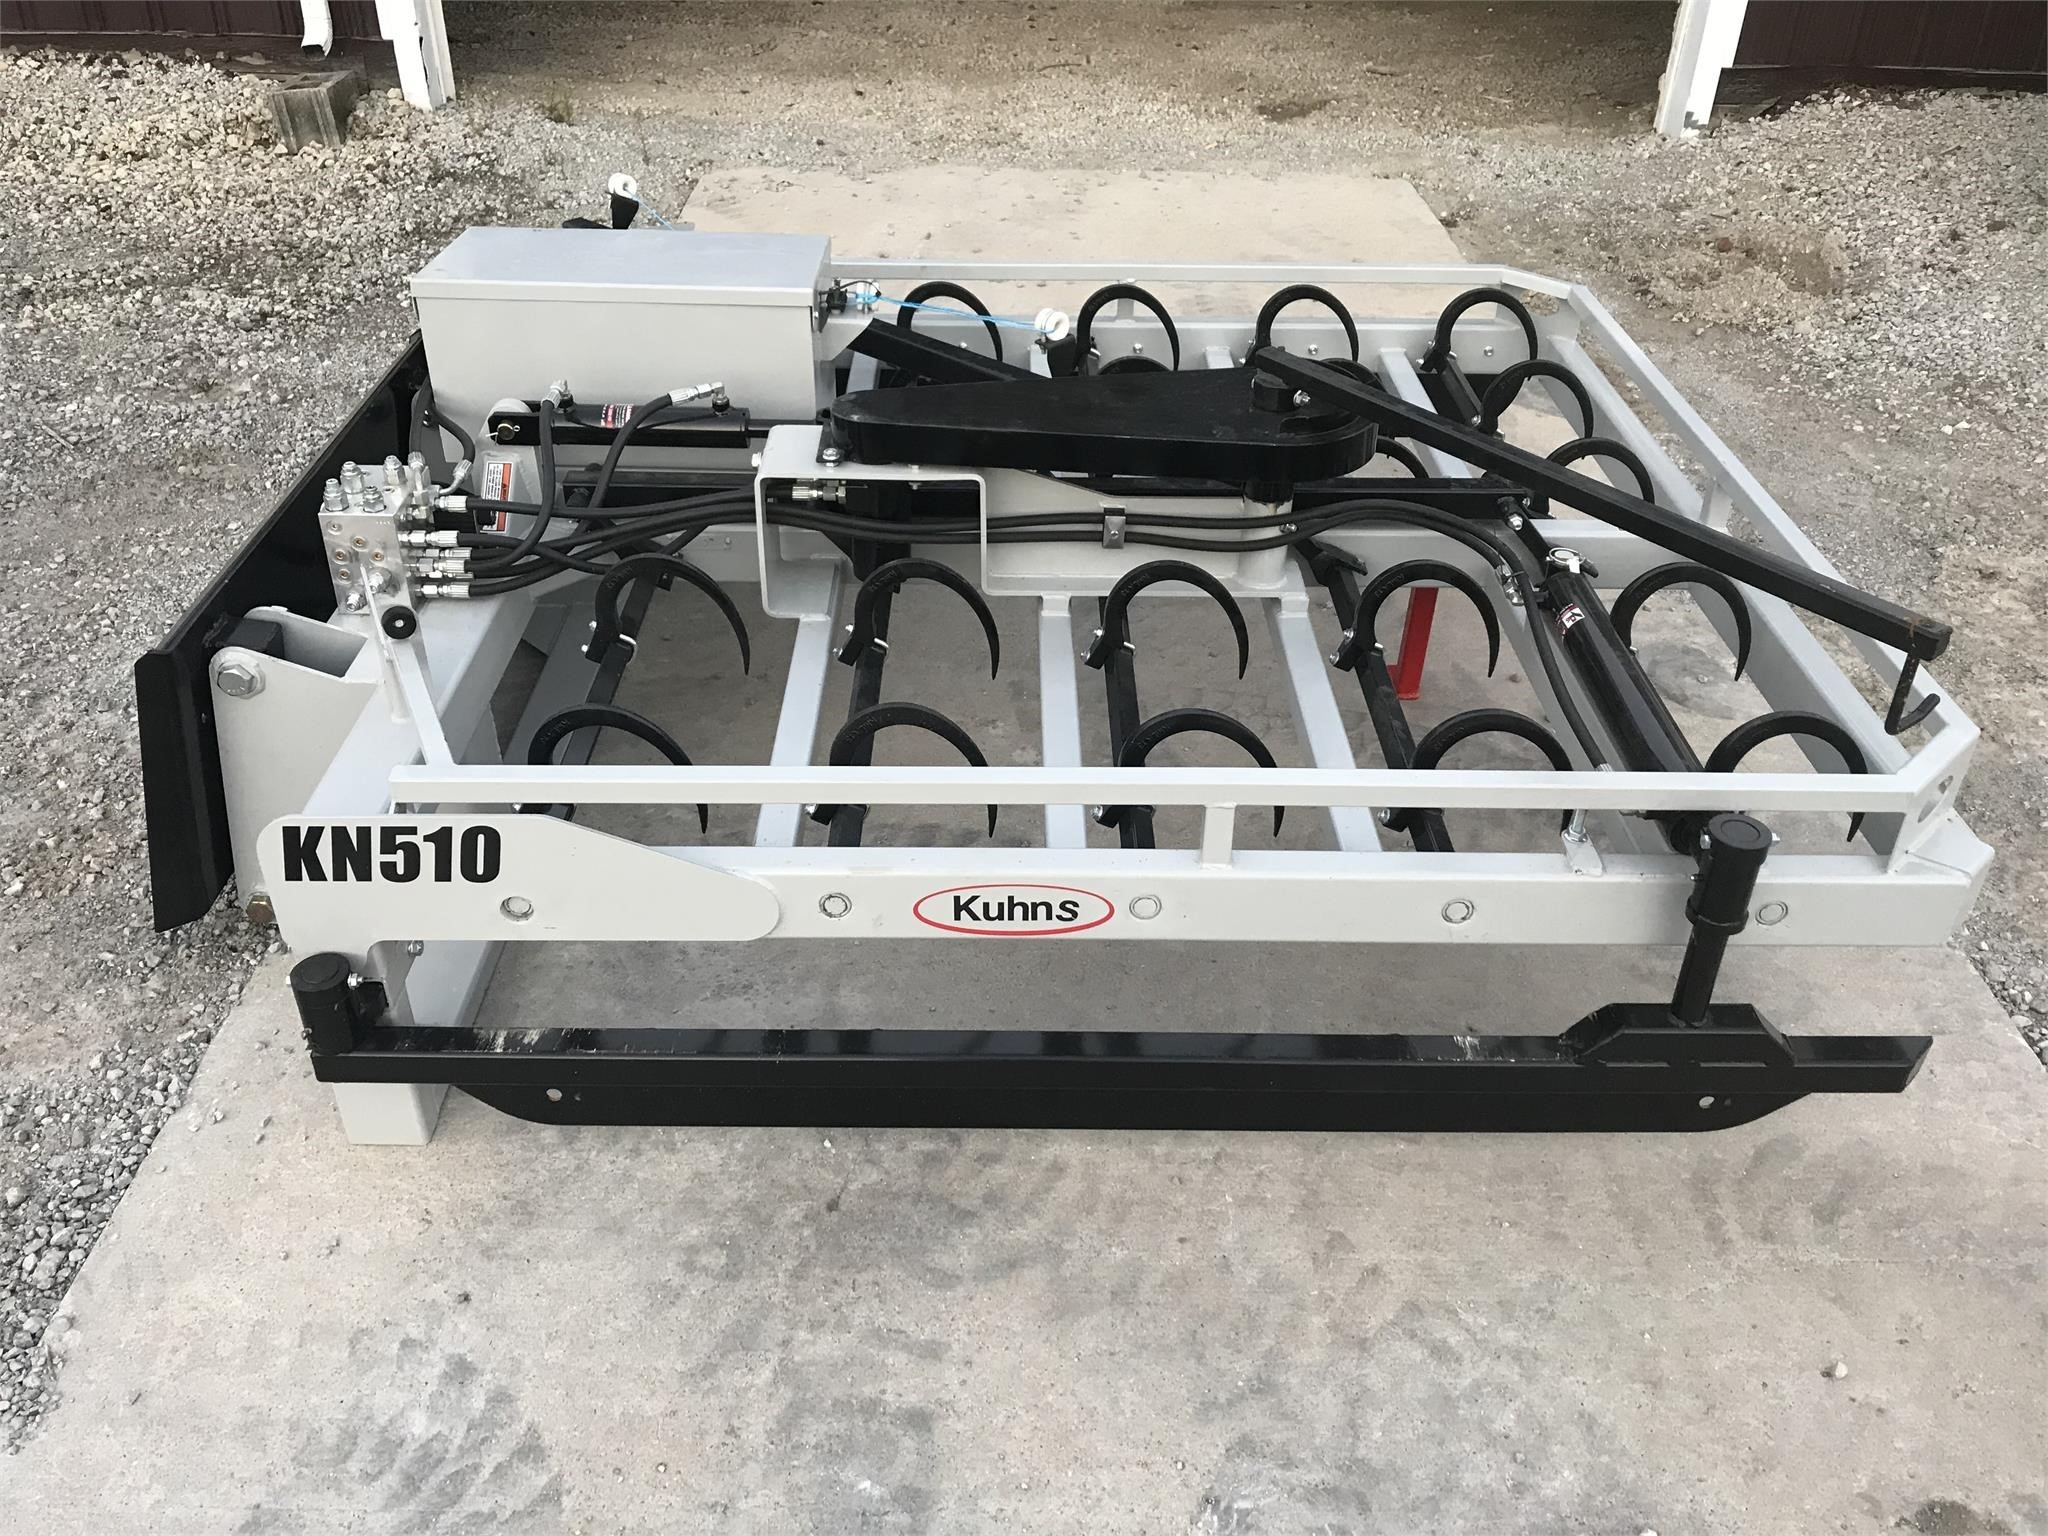 2021 Kuhns Manufacturing KN510 Loader and Skid Steer Attachment